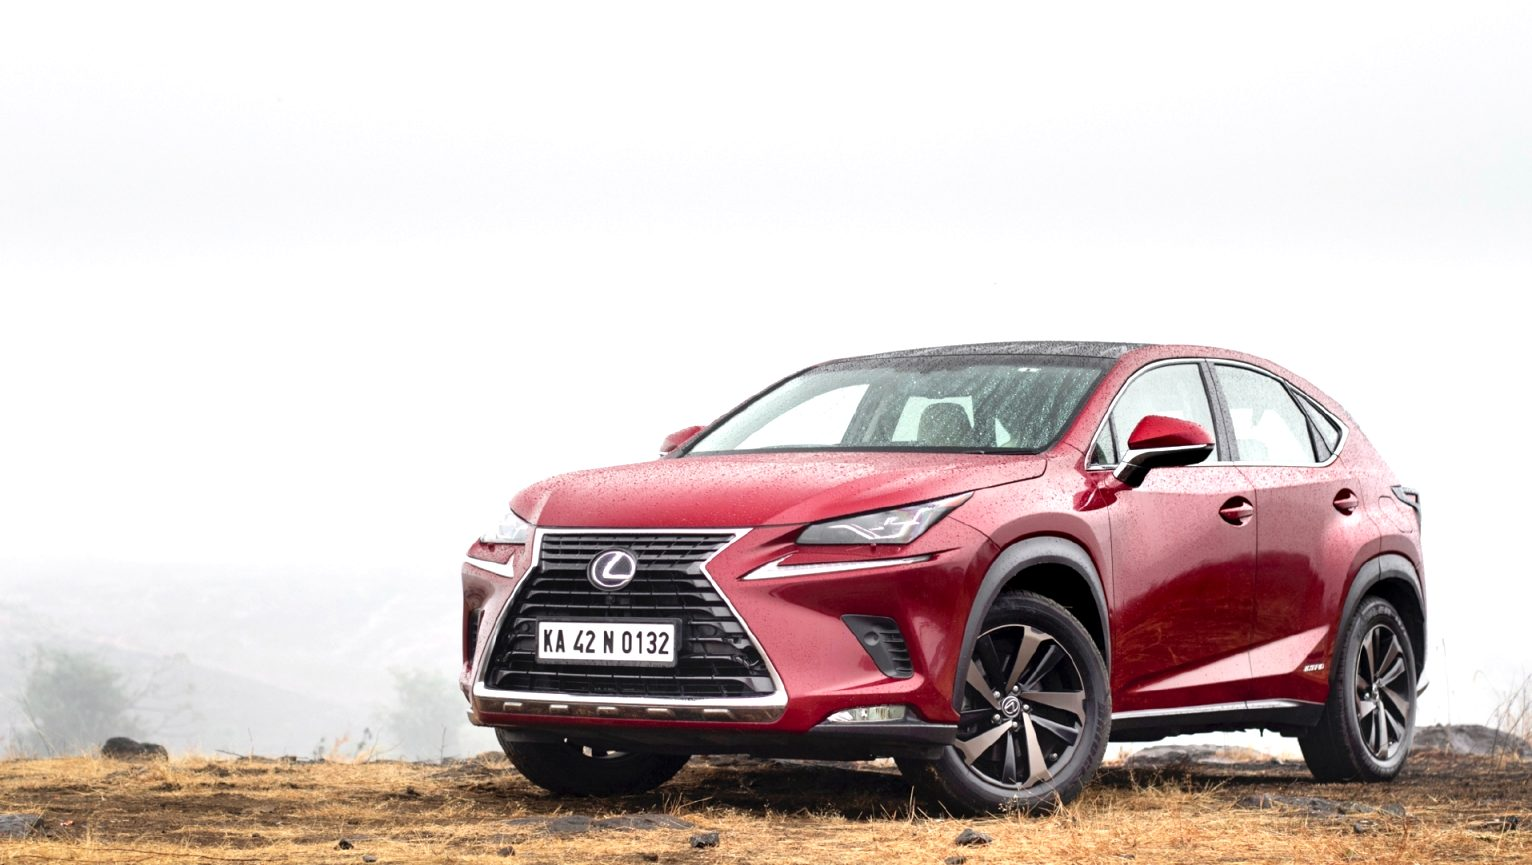 lexus car price in india 2021 Performance and New Engine